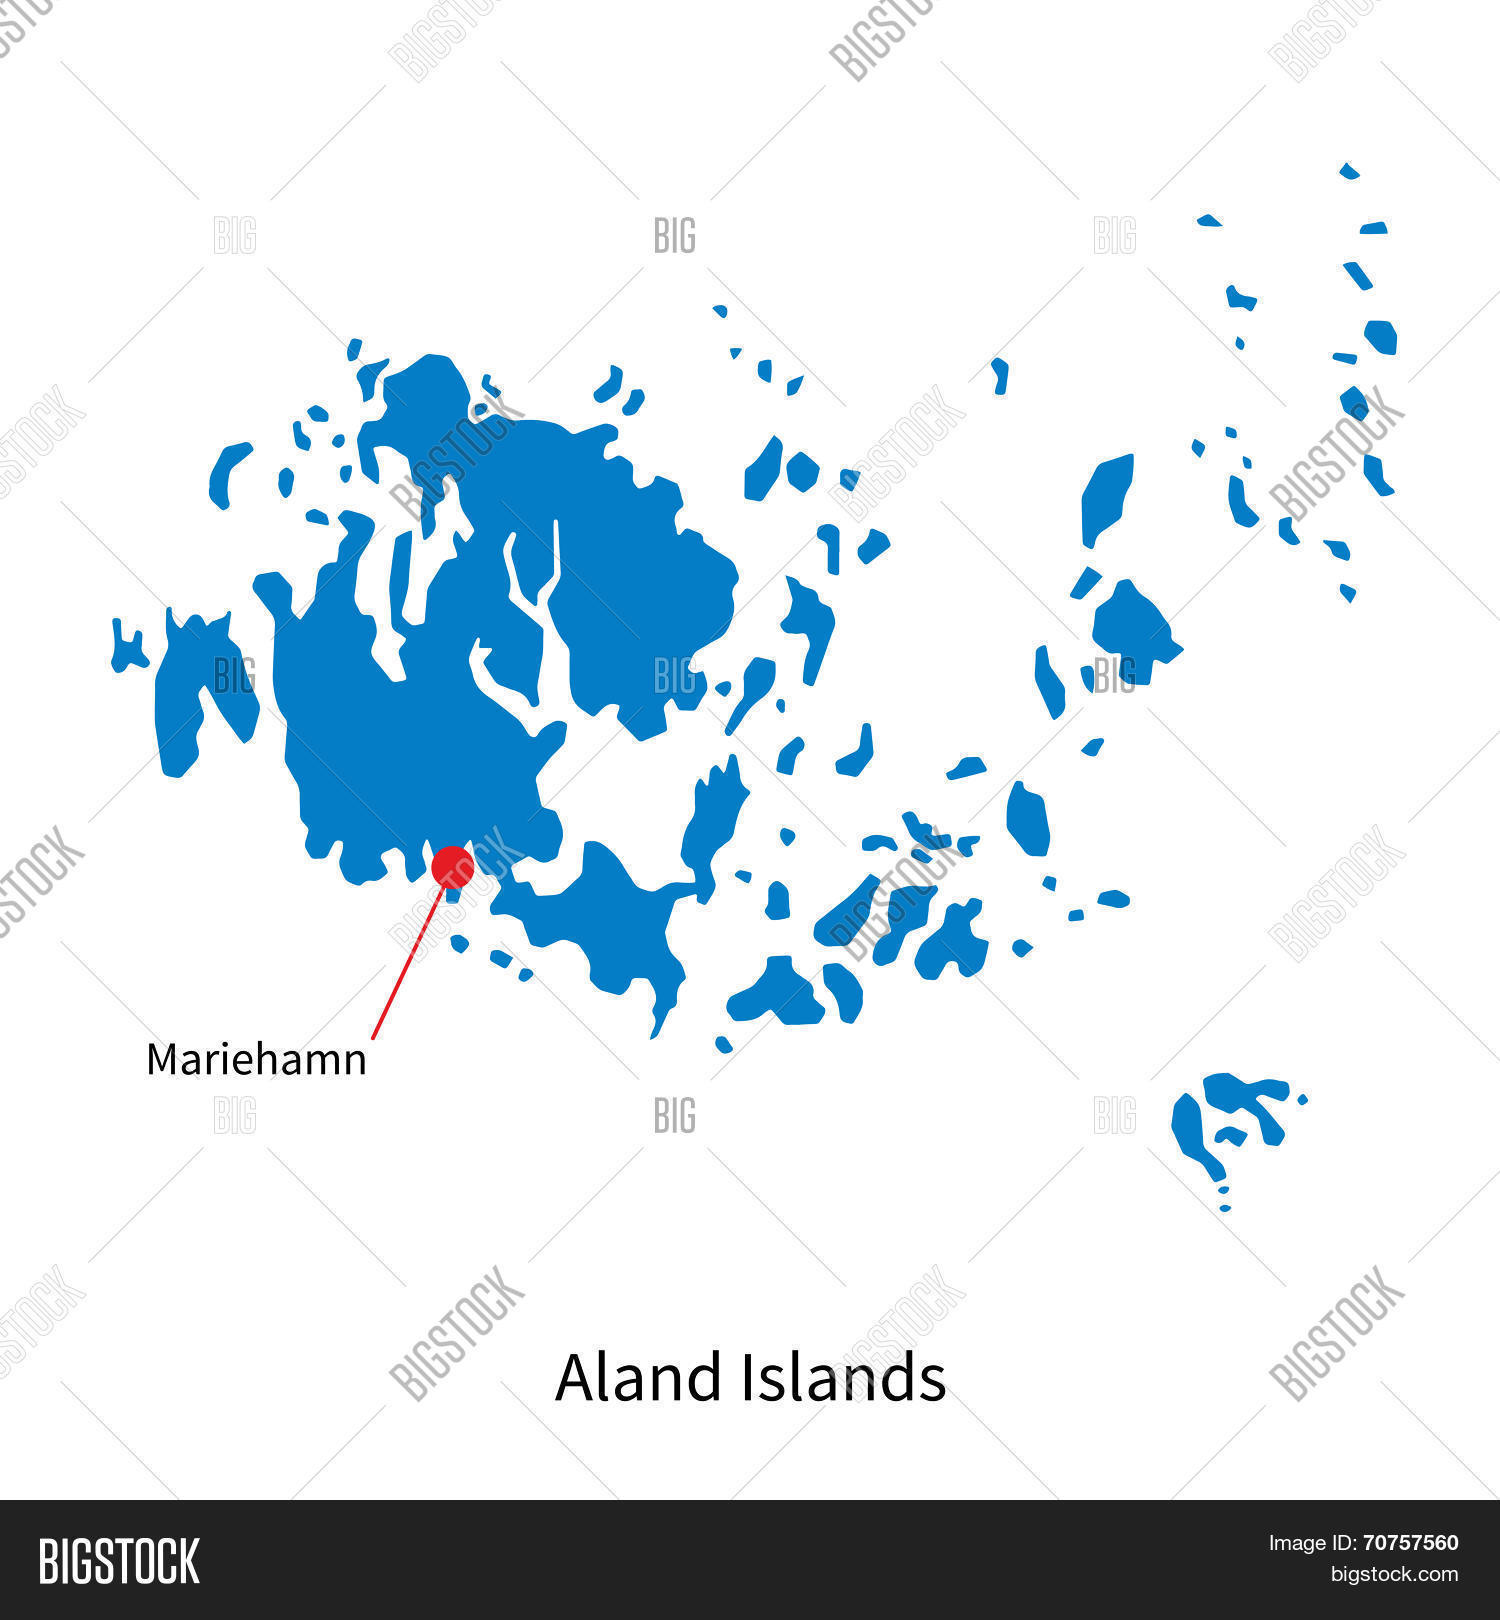 Detailed Vector Map Aland Islands Vector Photo Bigstock - Aland islands political map